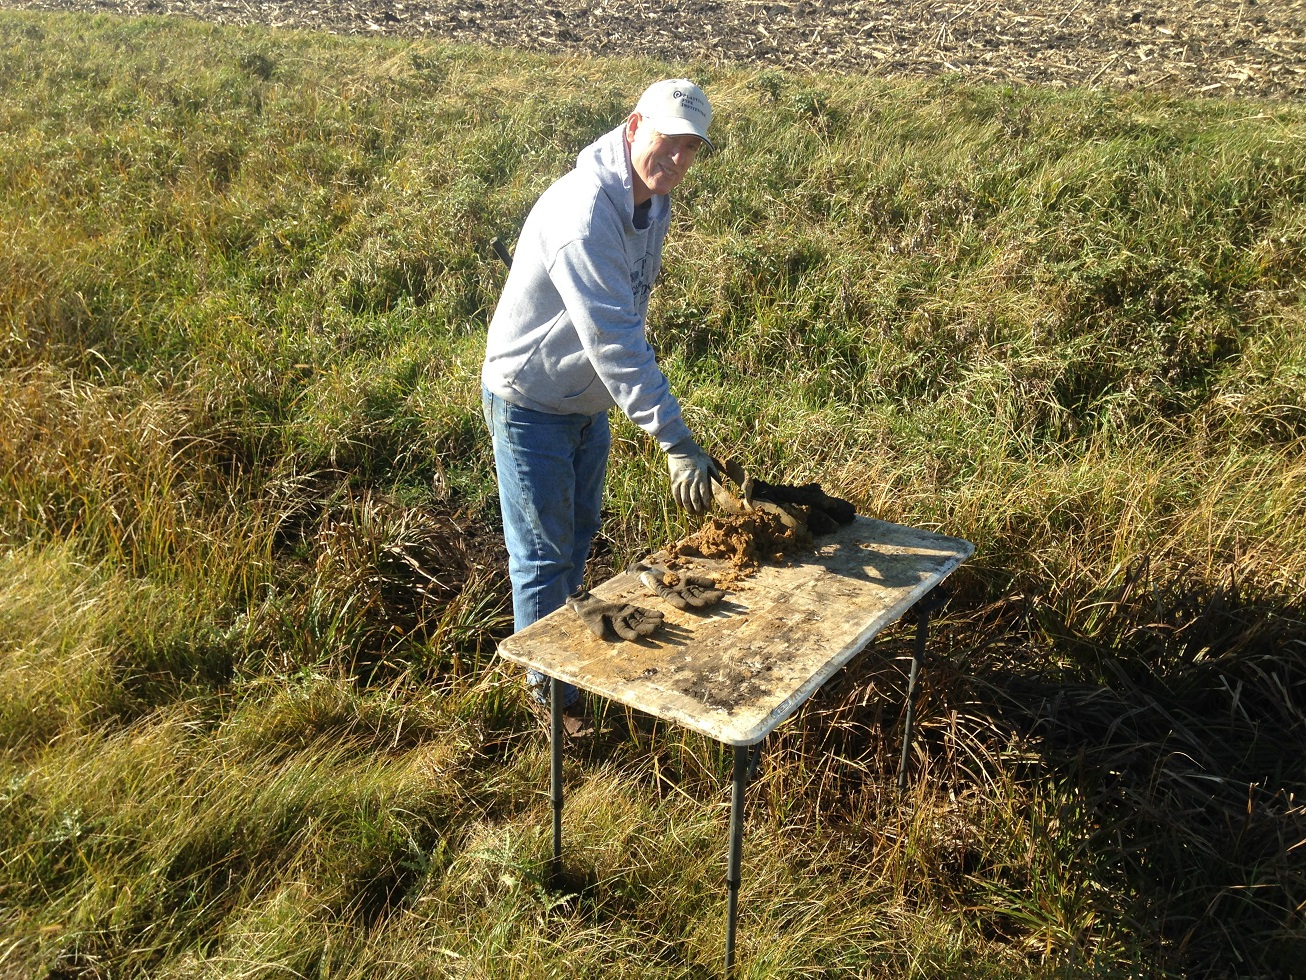 Keith Schilling stands in a road ditch examining soil samples on a table.